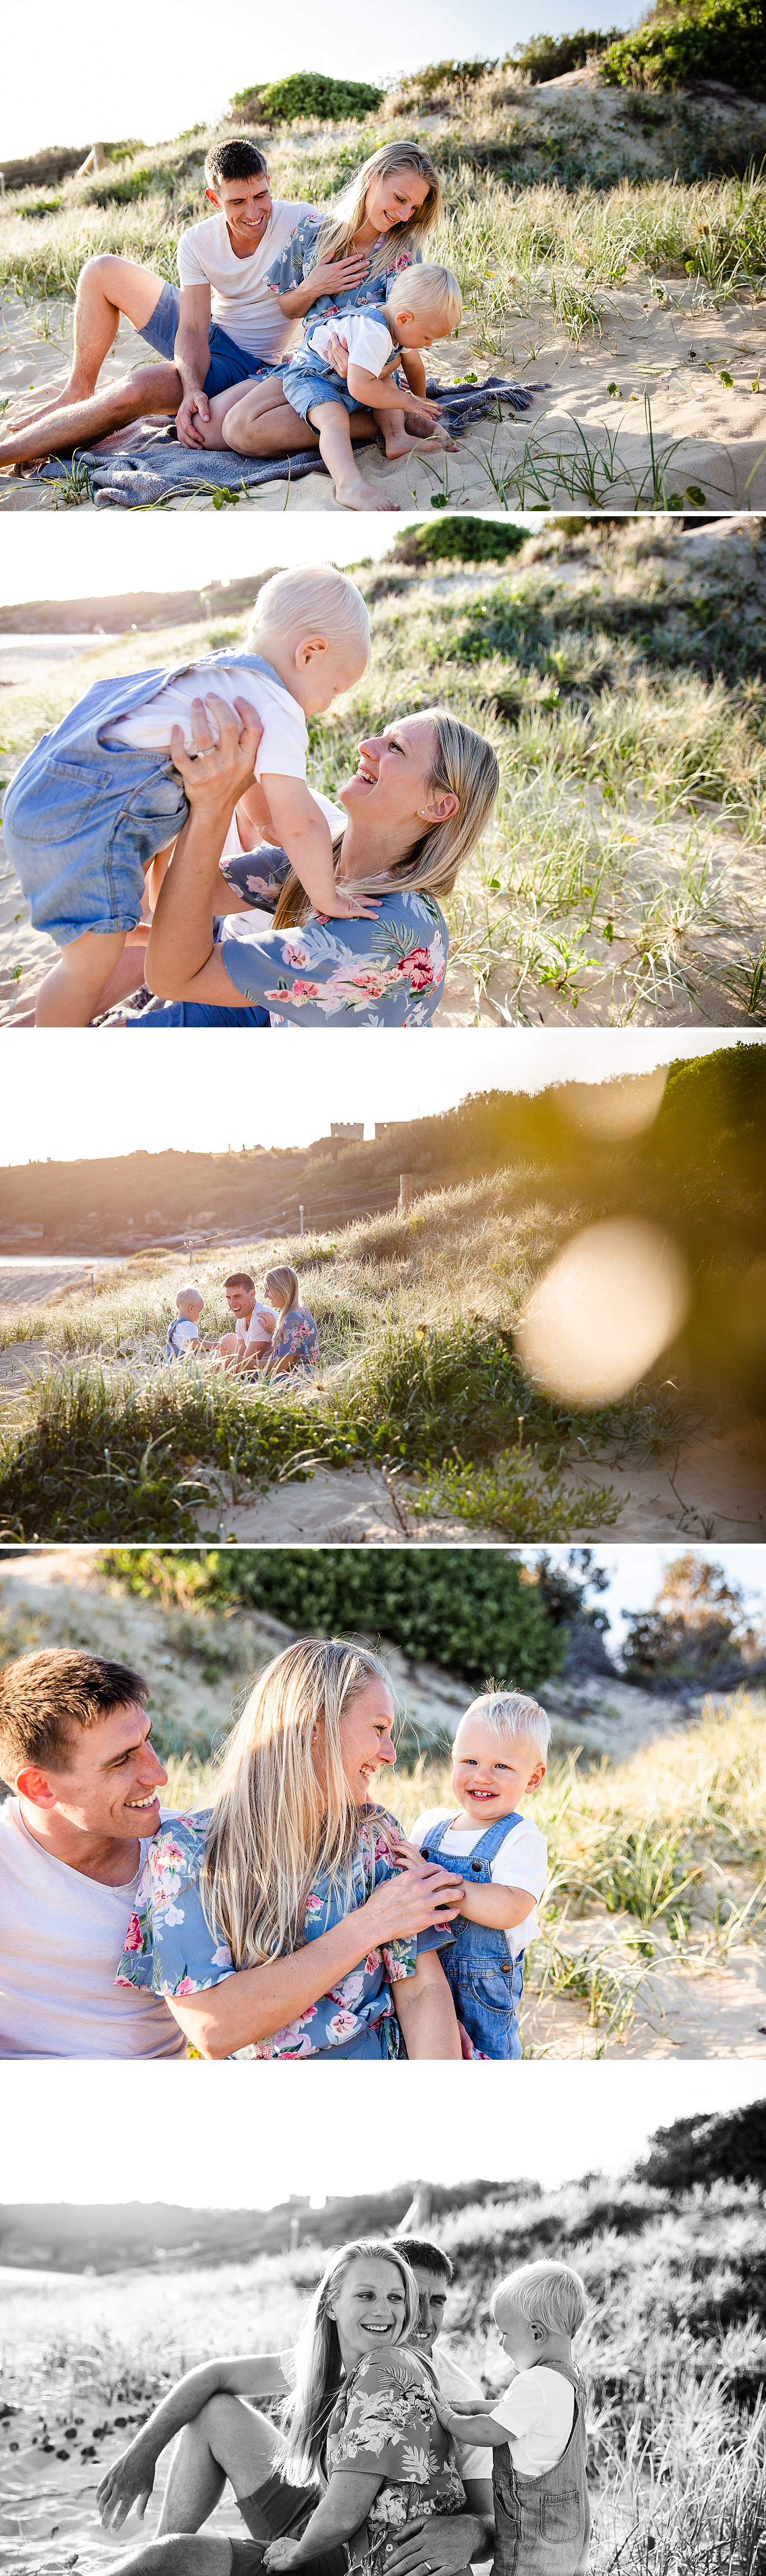 Sydney family beach photography_0002.jpg